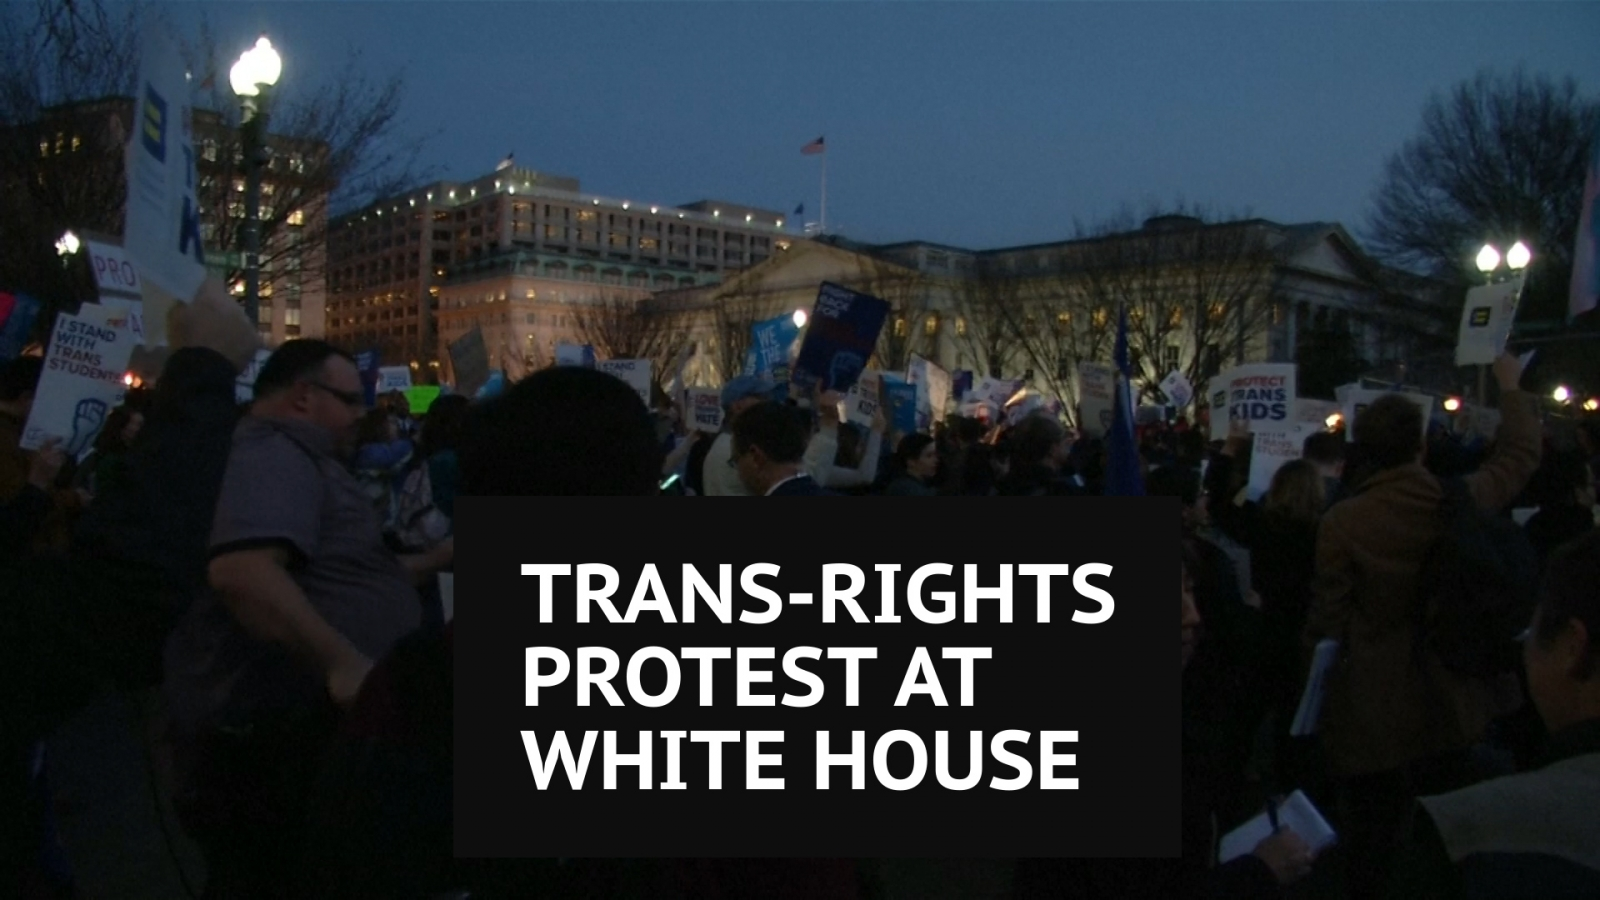 Trans-rights protest at White House